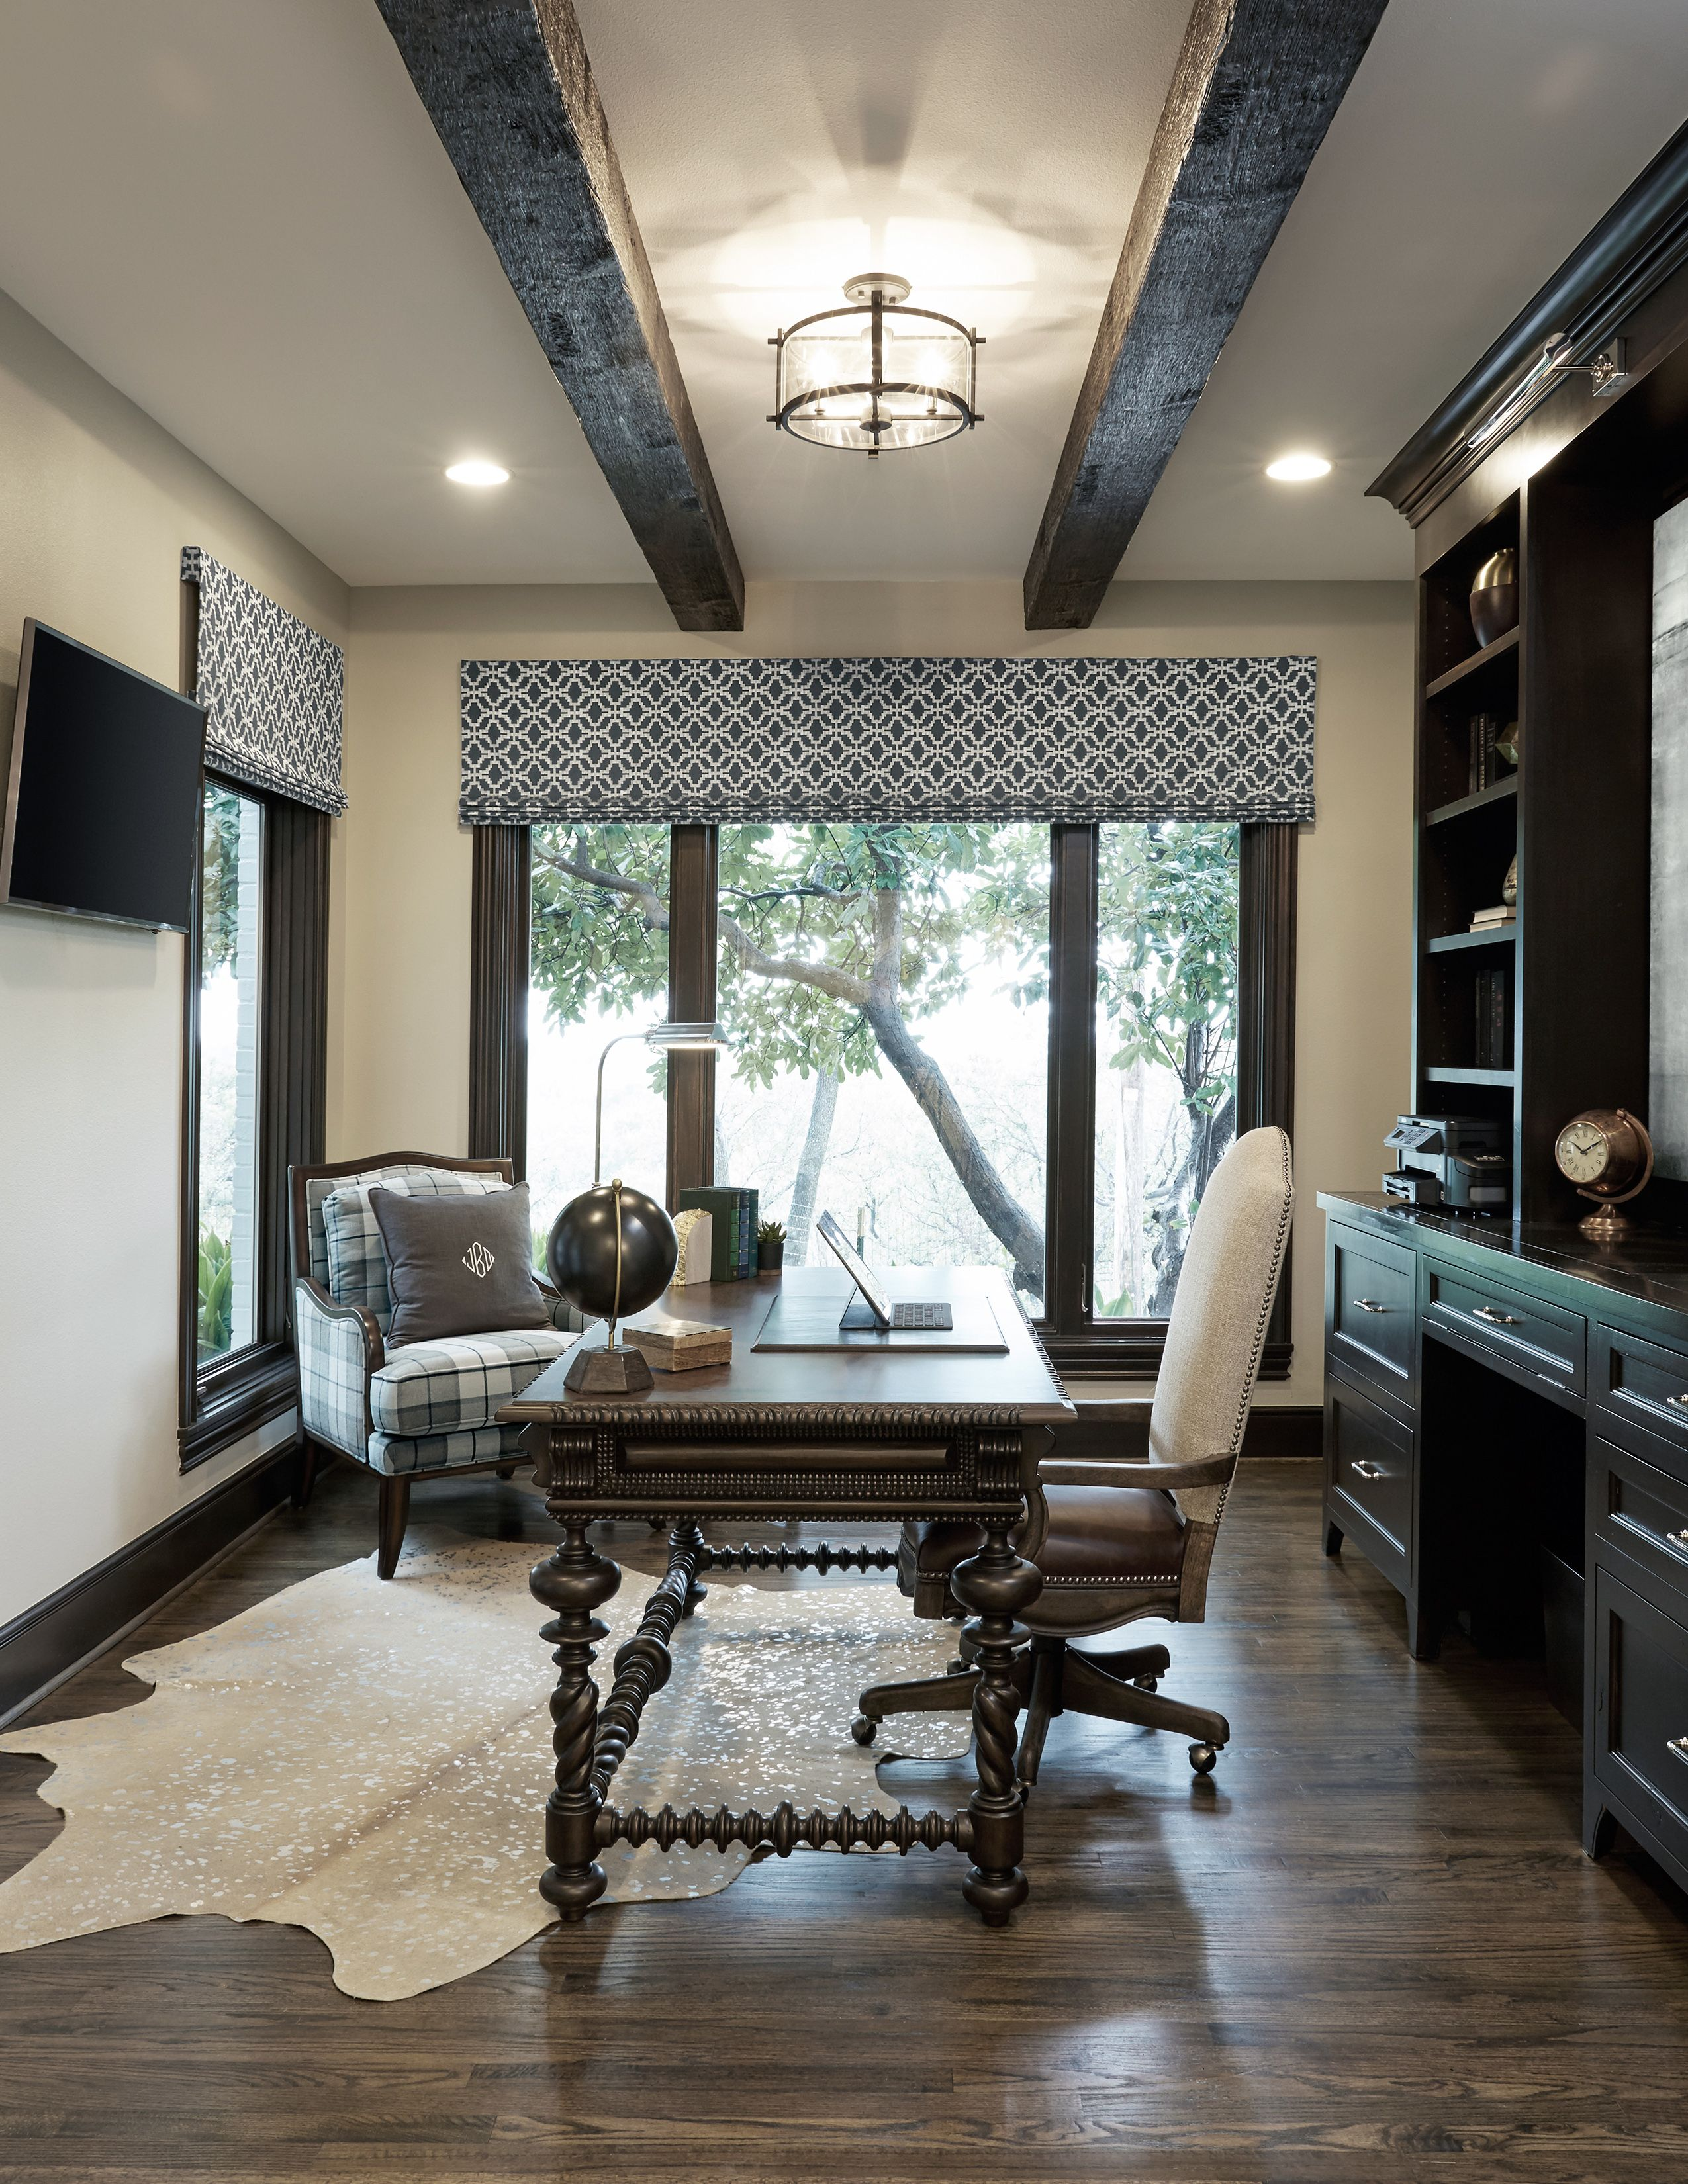 Simondale Project: Home Office, by A Well Dressed Home, LLC ... on well dressed home decor, well dressed windows, wall decal designs, furniture designs, well dressed family, well dressed home christmas, wall frame designs, well dressed shoes,